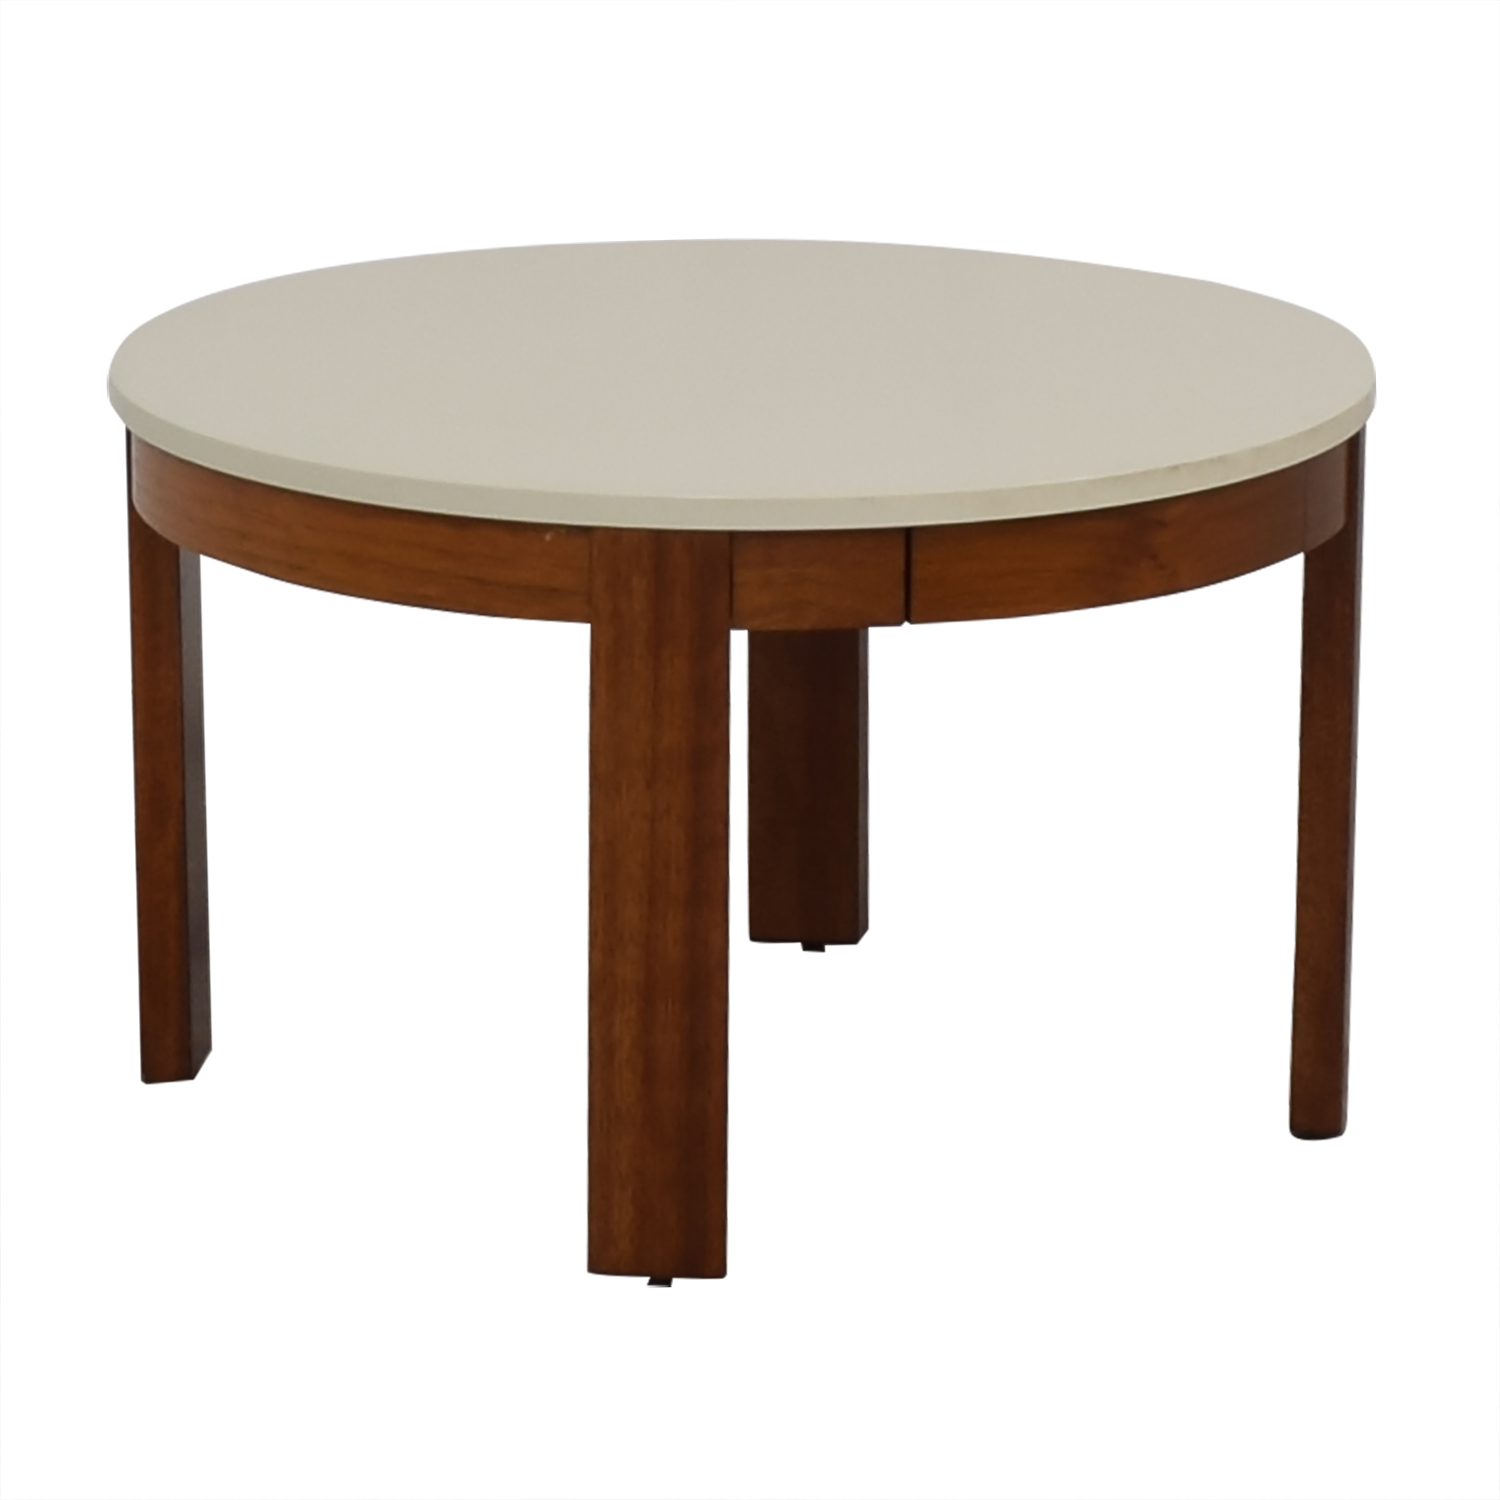 Crate & Barrel Crate & Barrel Small Coffee Table white & brown